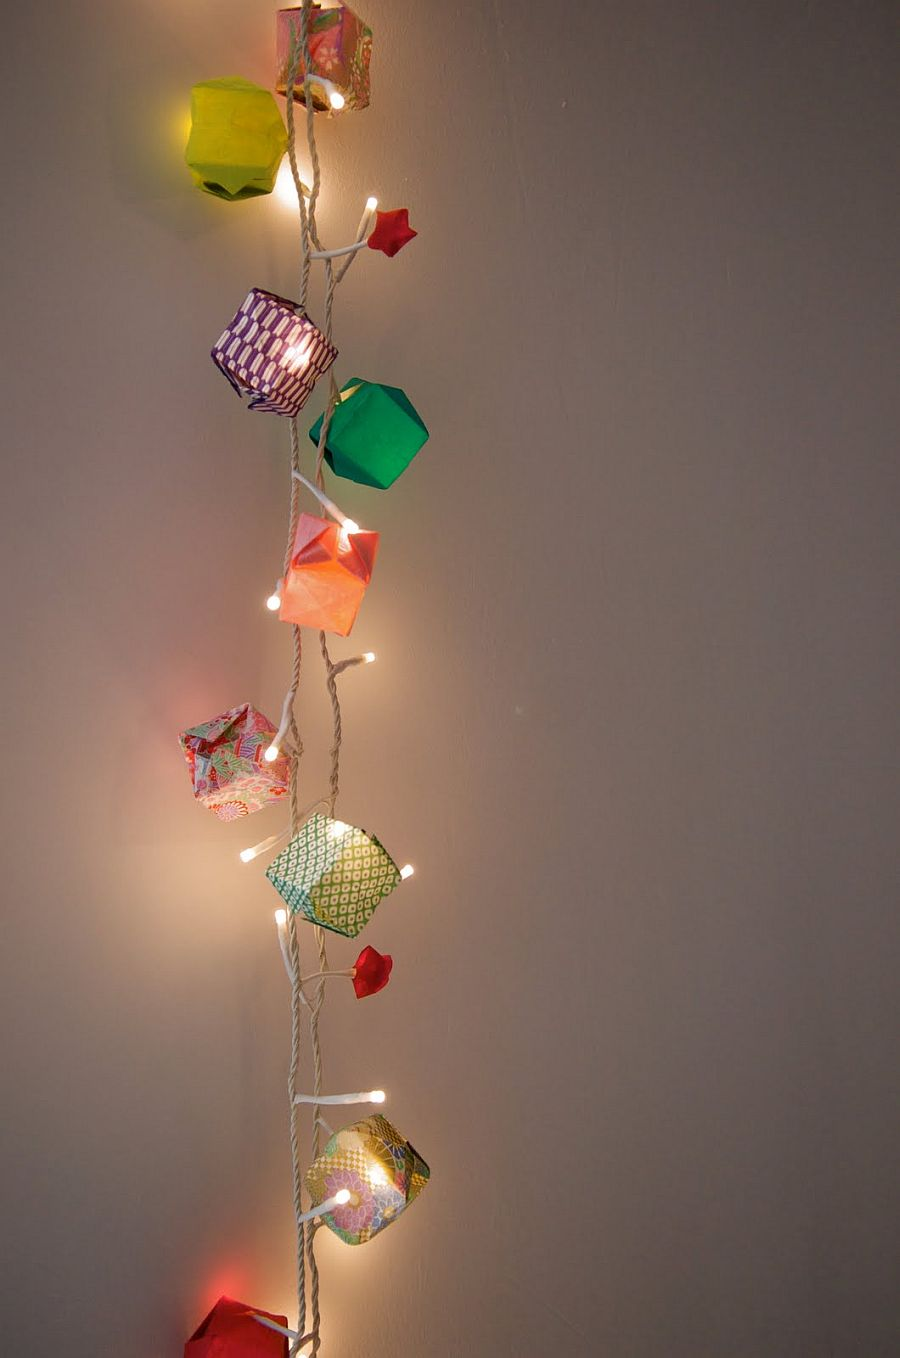 Diy Christmas String Lights : A Season for Stirring Radiance: 15 DIY String Light Crafts for the Holidays